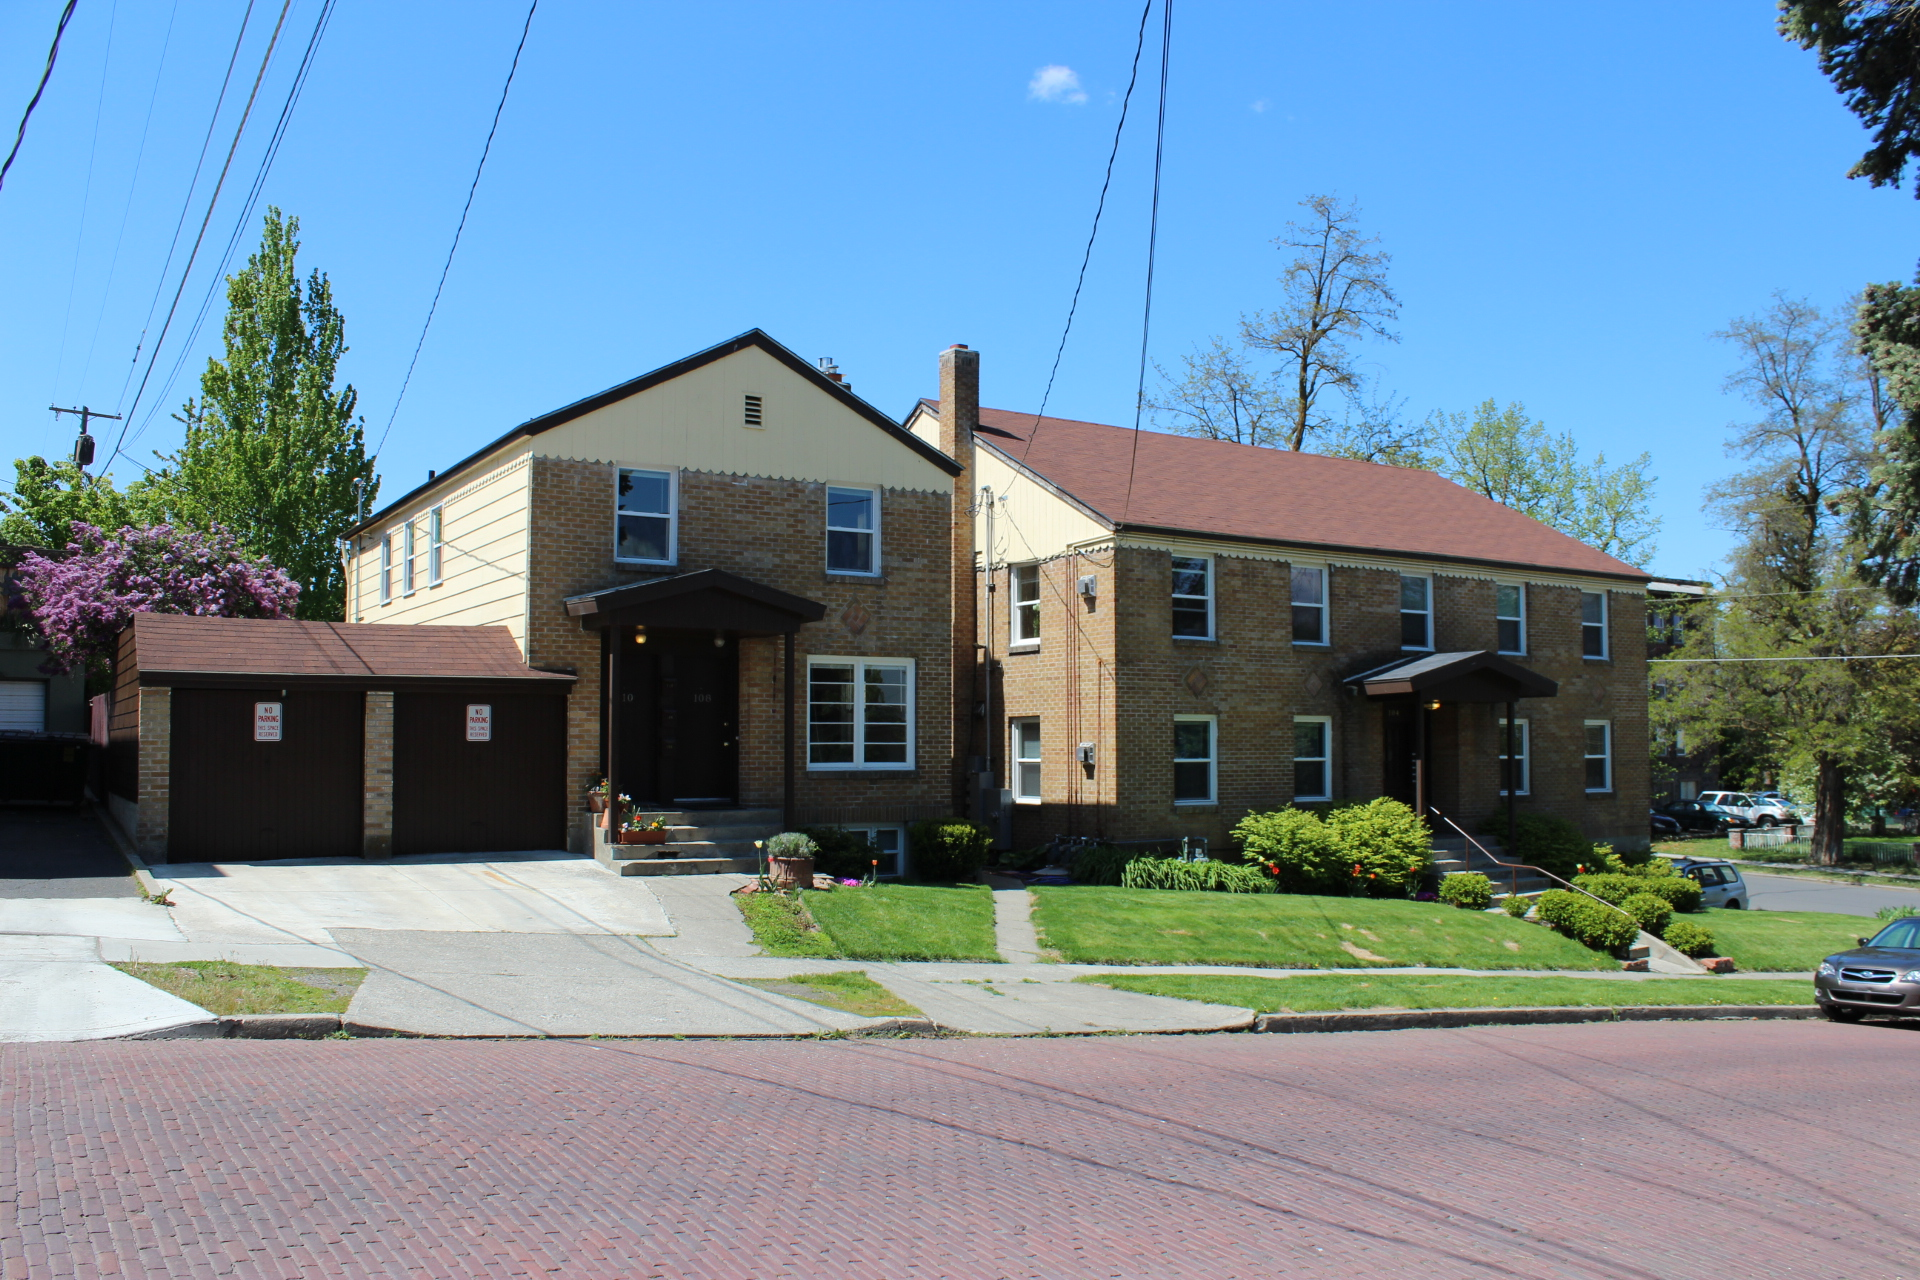 8 Unit Apartment in Browne's Addition                   Sale: $549,000